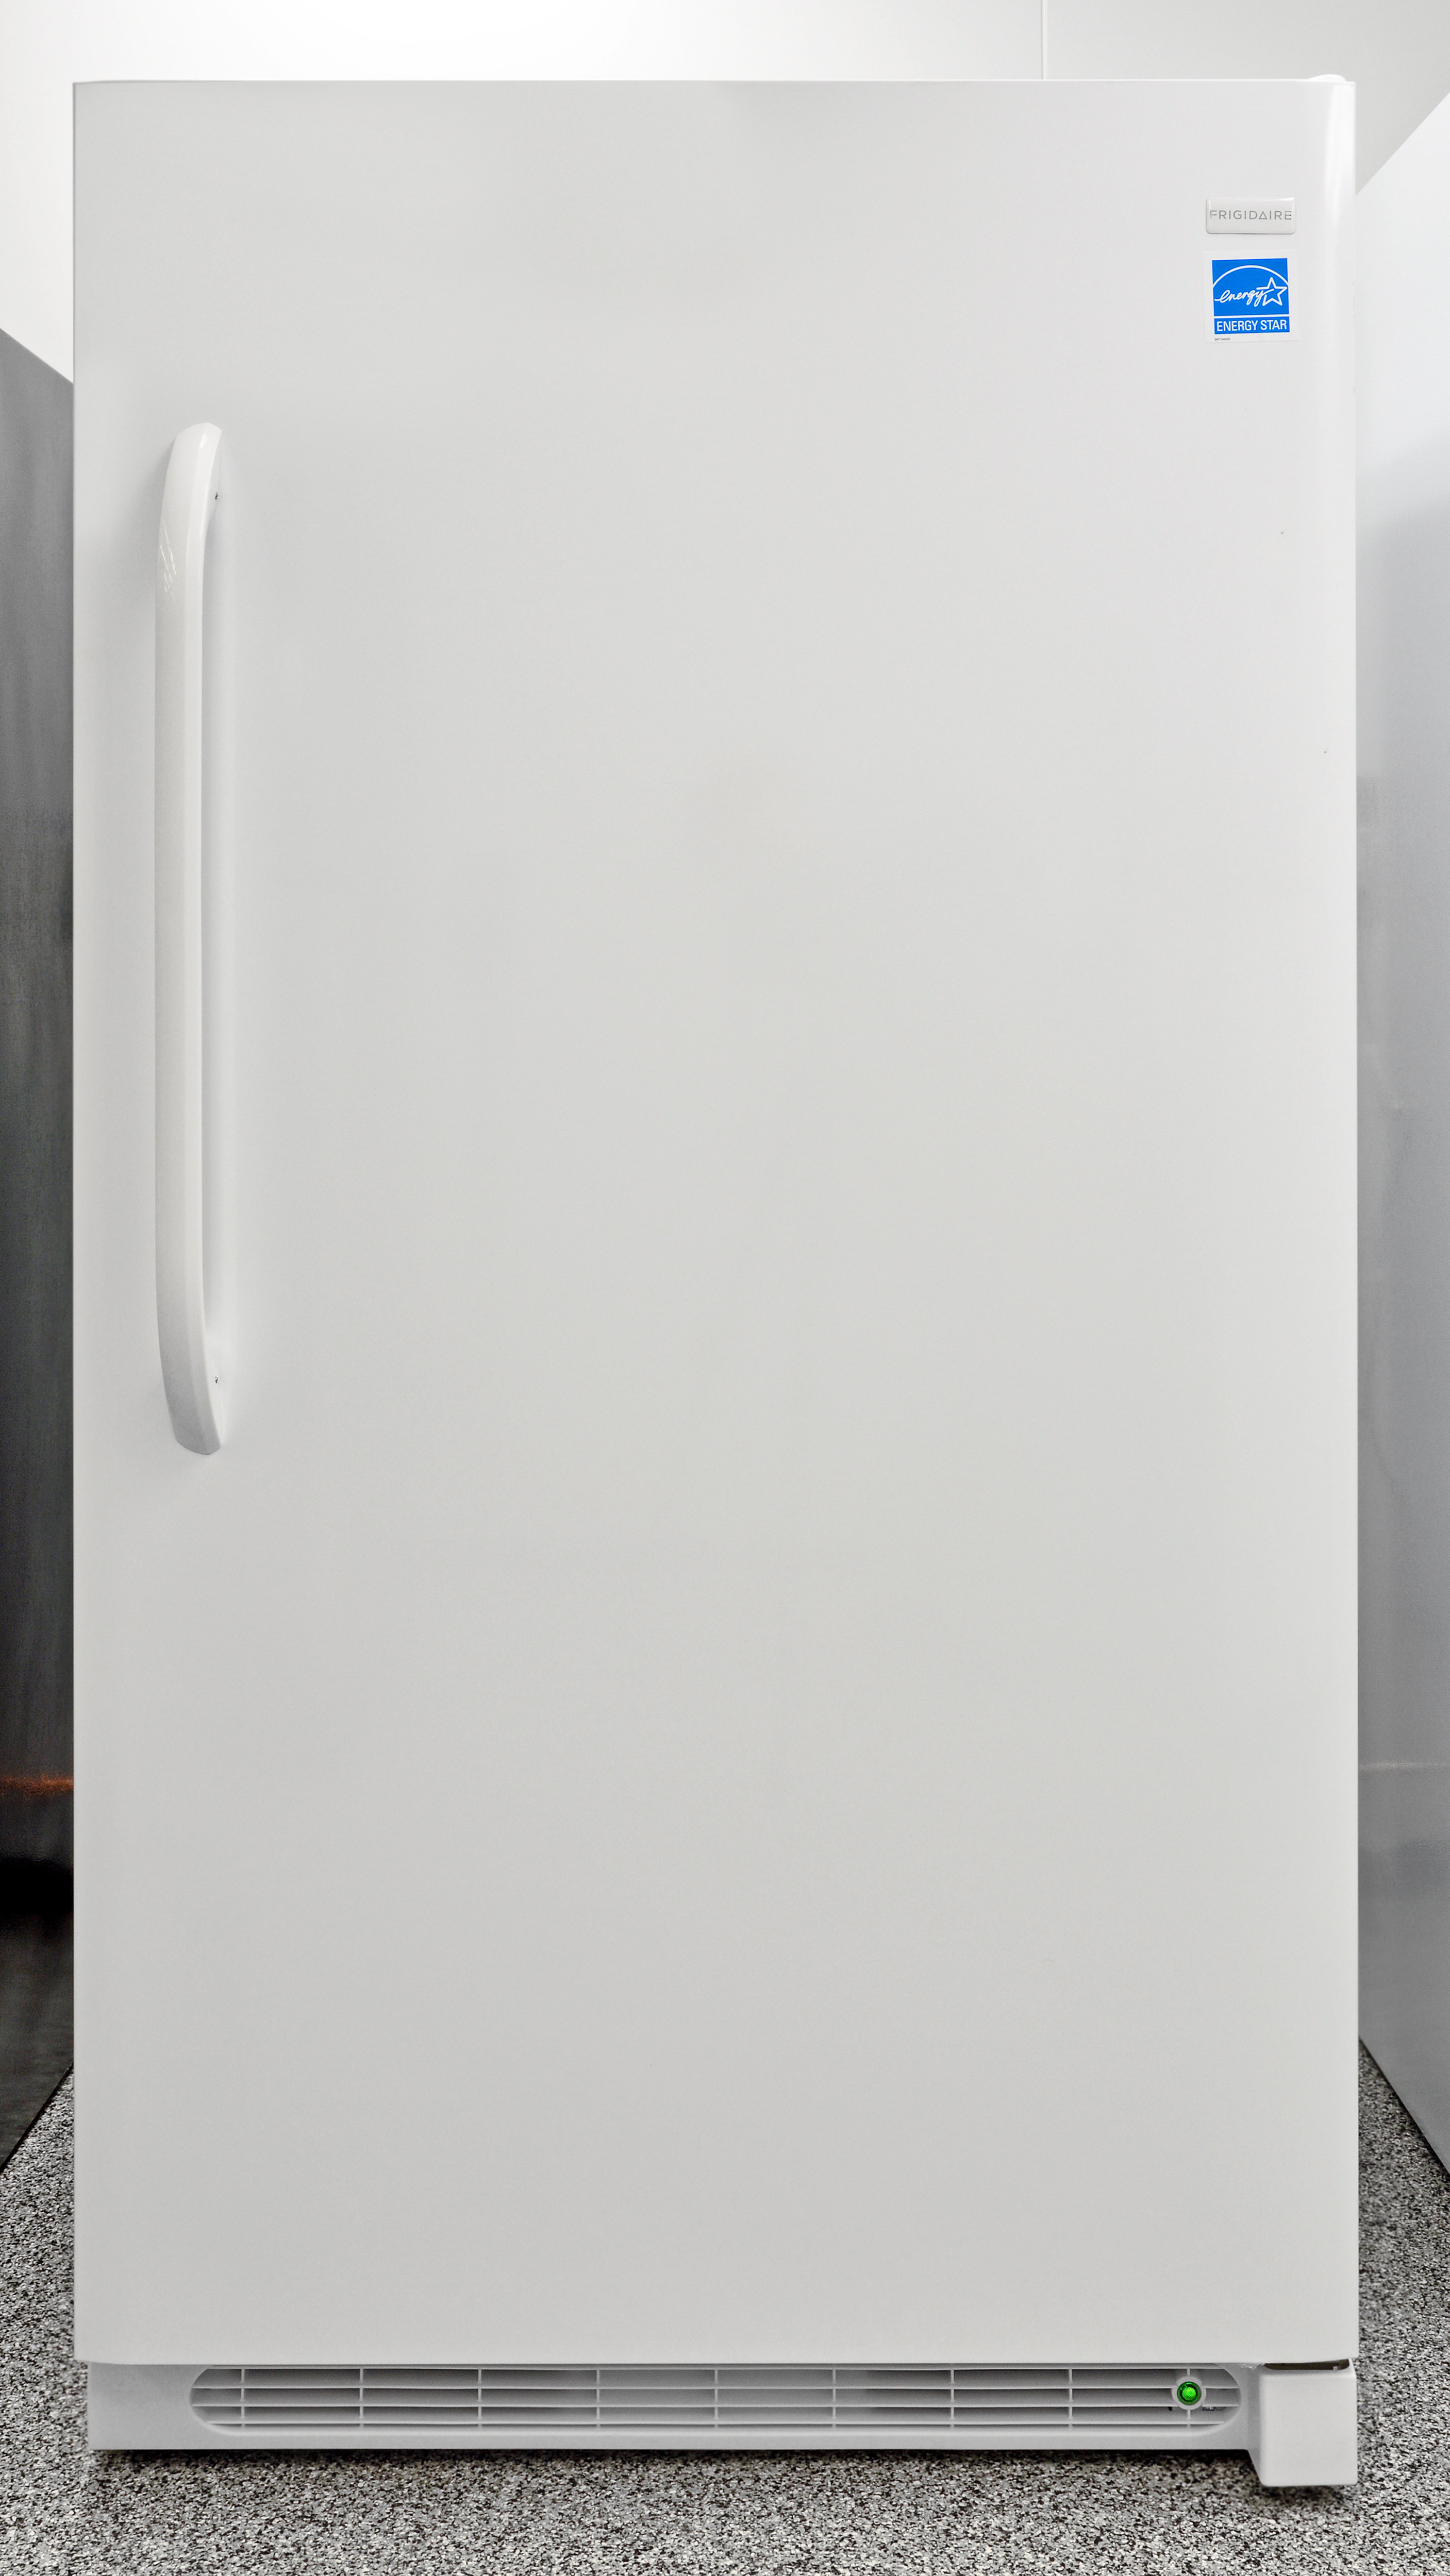 From the front, the Frigidaire FFFH17F2QW is just a large white expanse of glossy plastic.